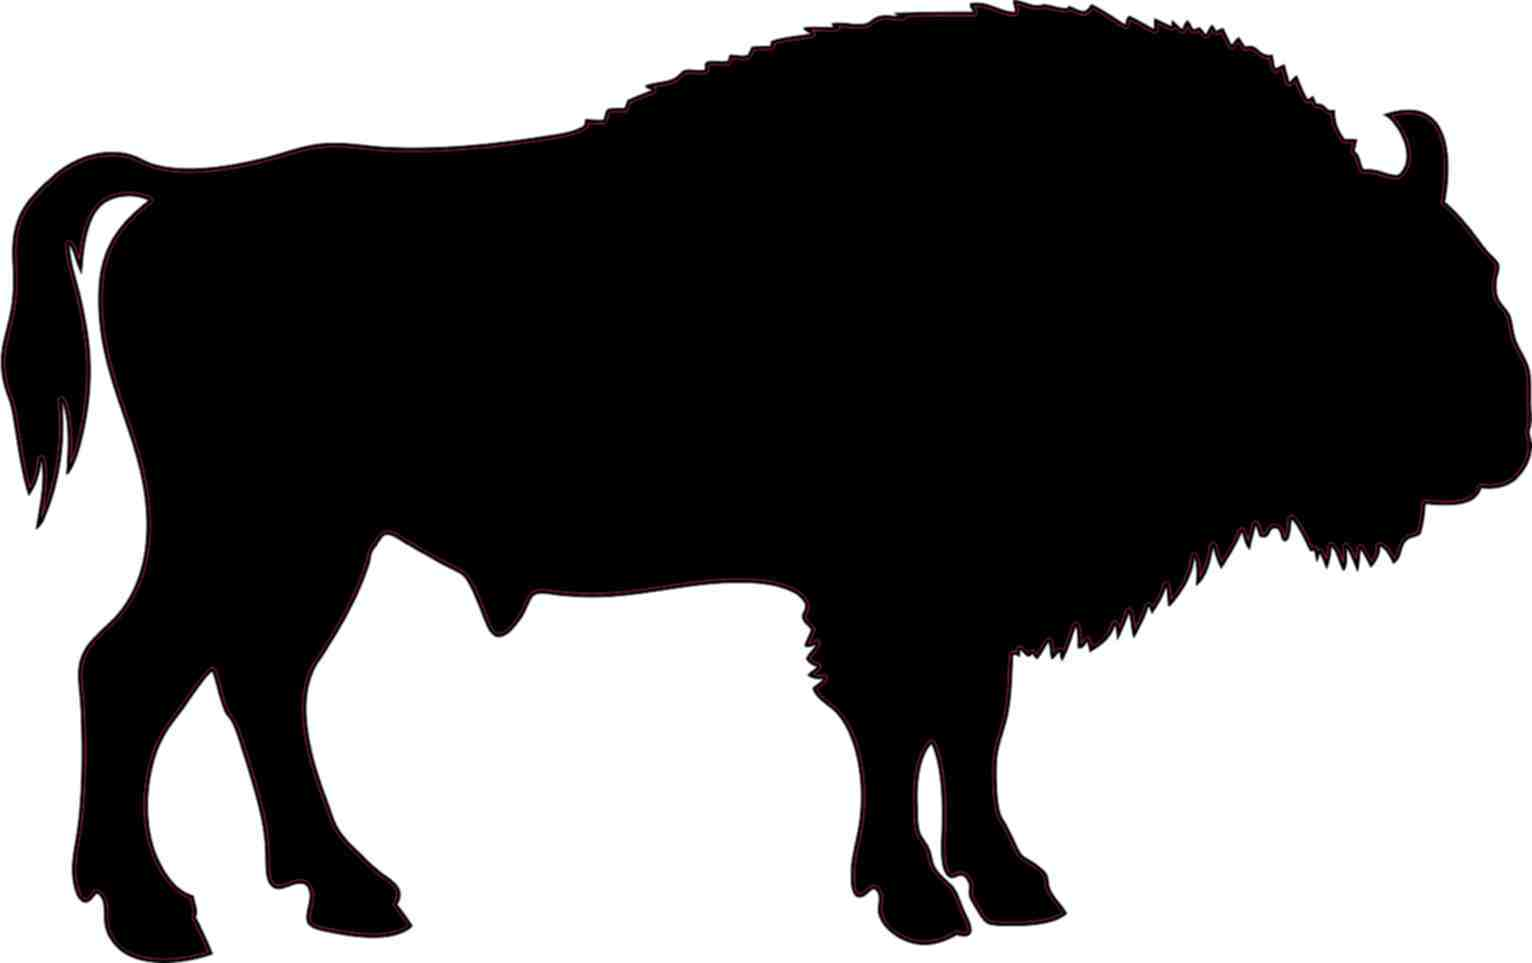 Images at getdrawings com. Bison clipart buffalo silhouette